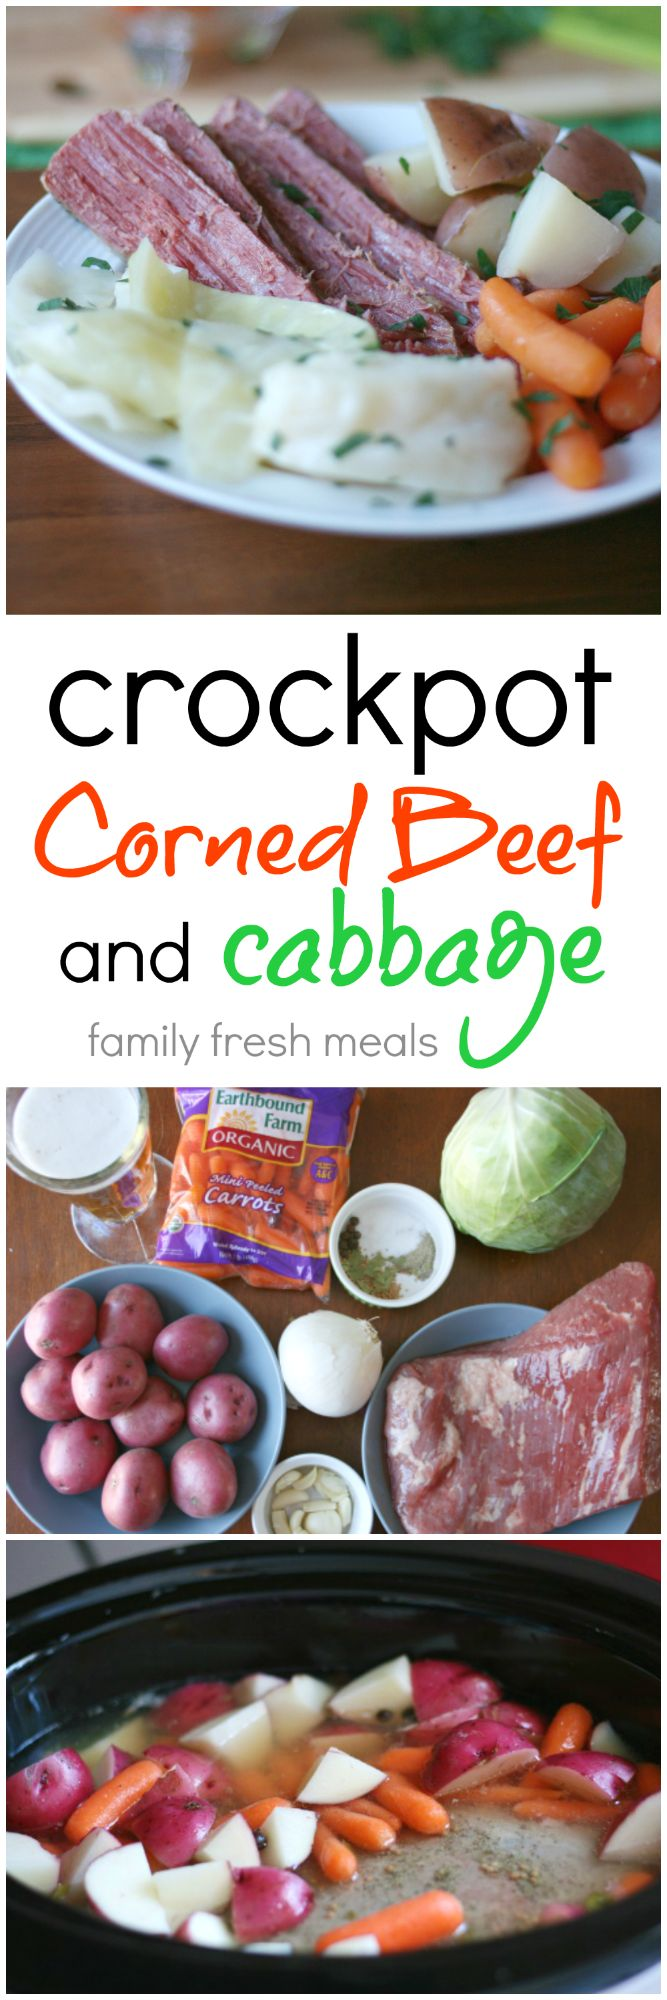 No seasoning packet, add carrots and potatoes to cook all day. Add cabbage 1.5hrs before eating. Lizz